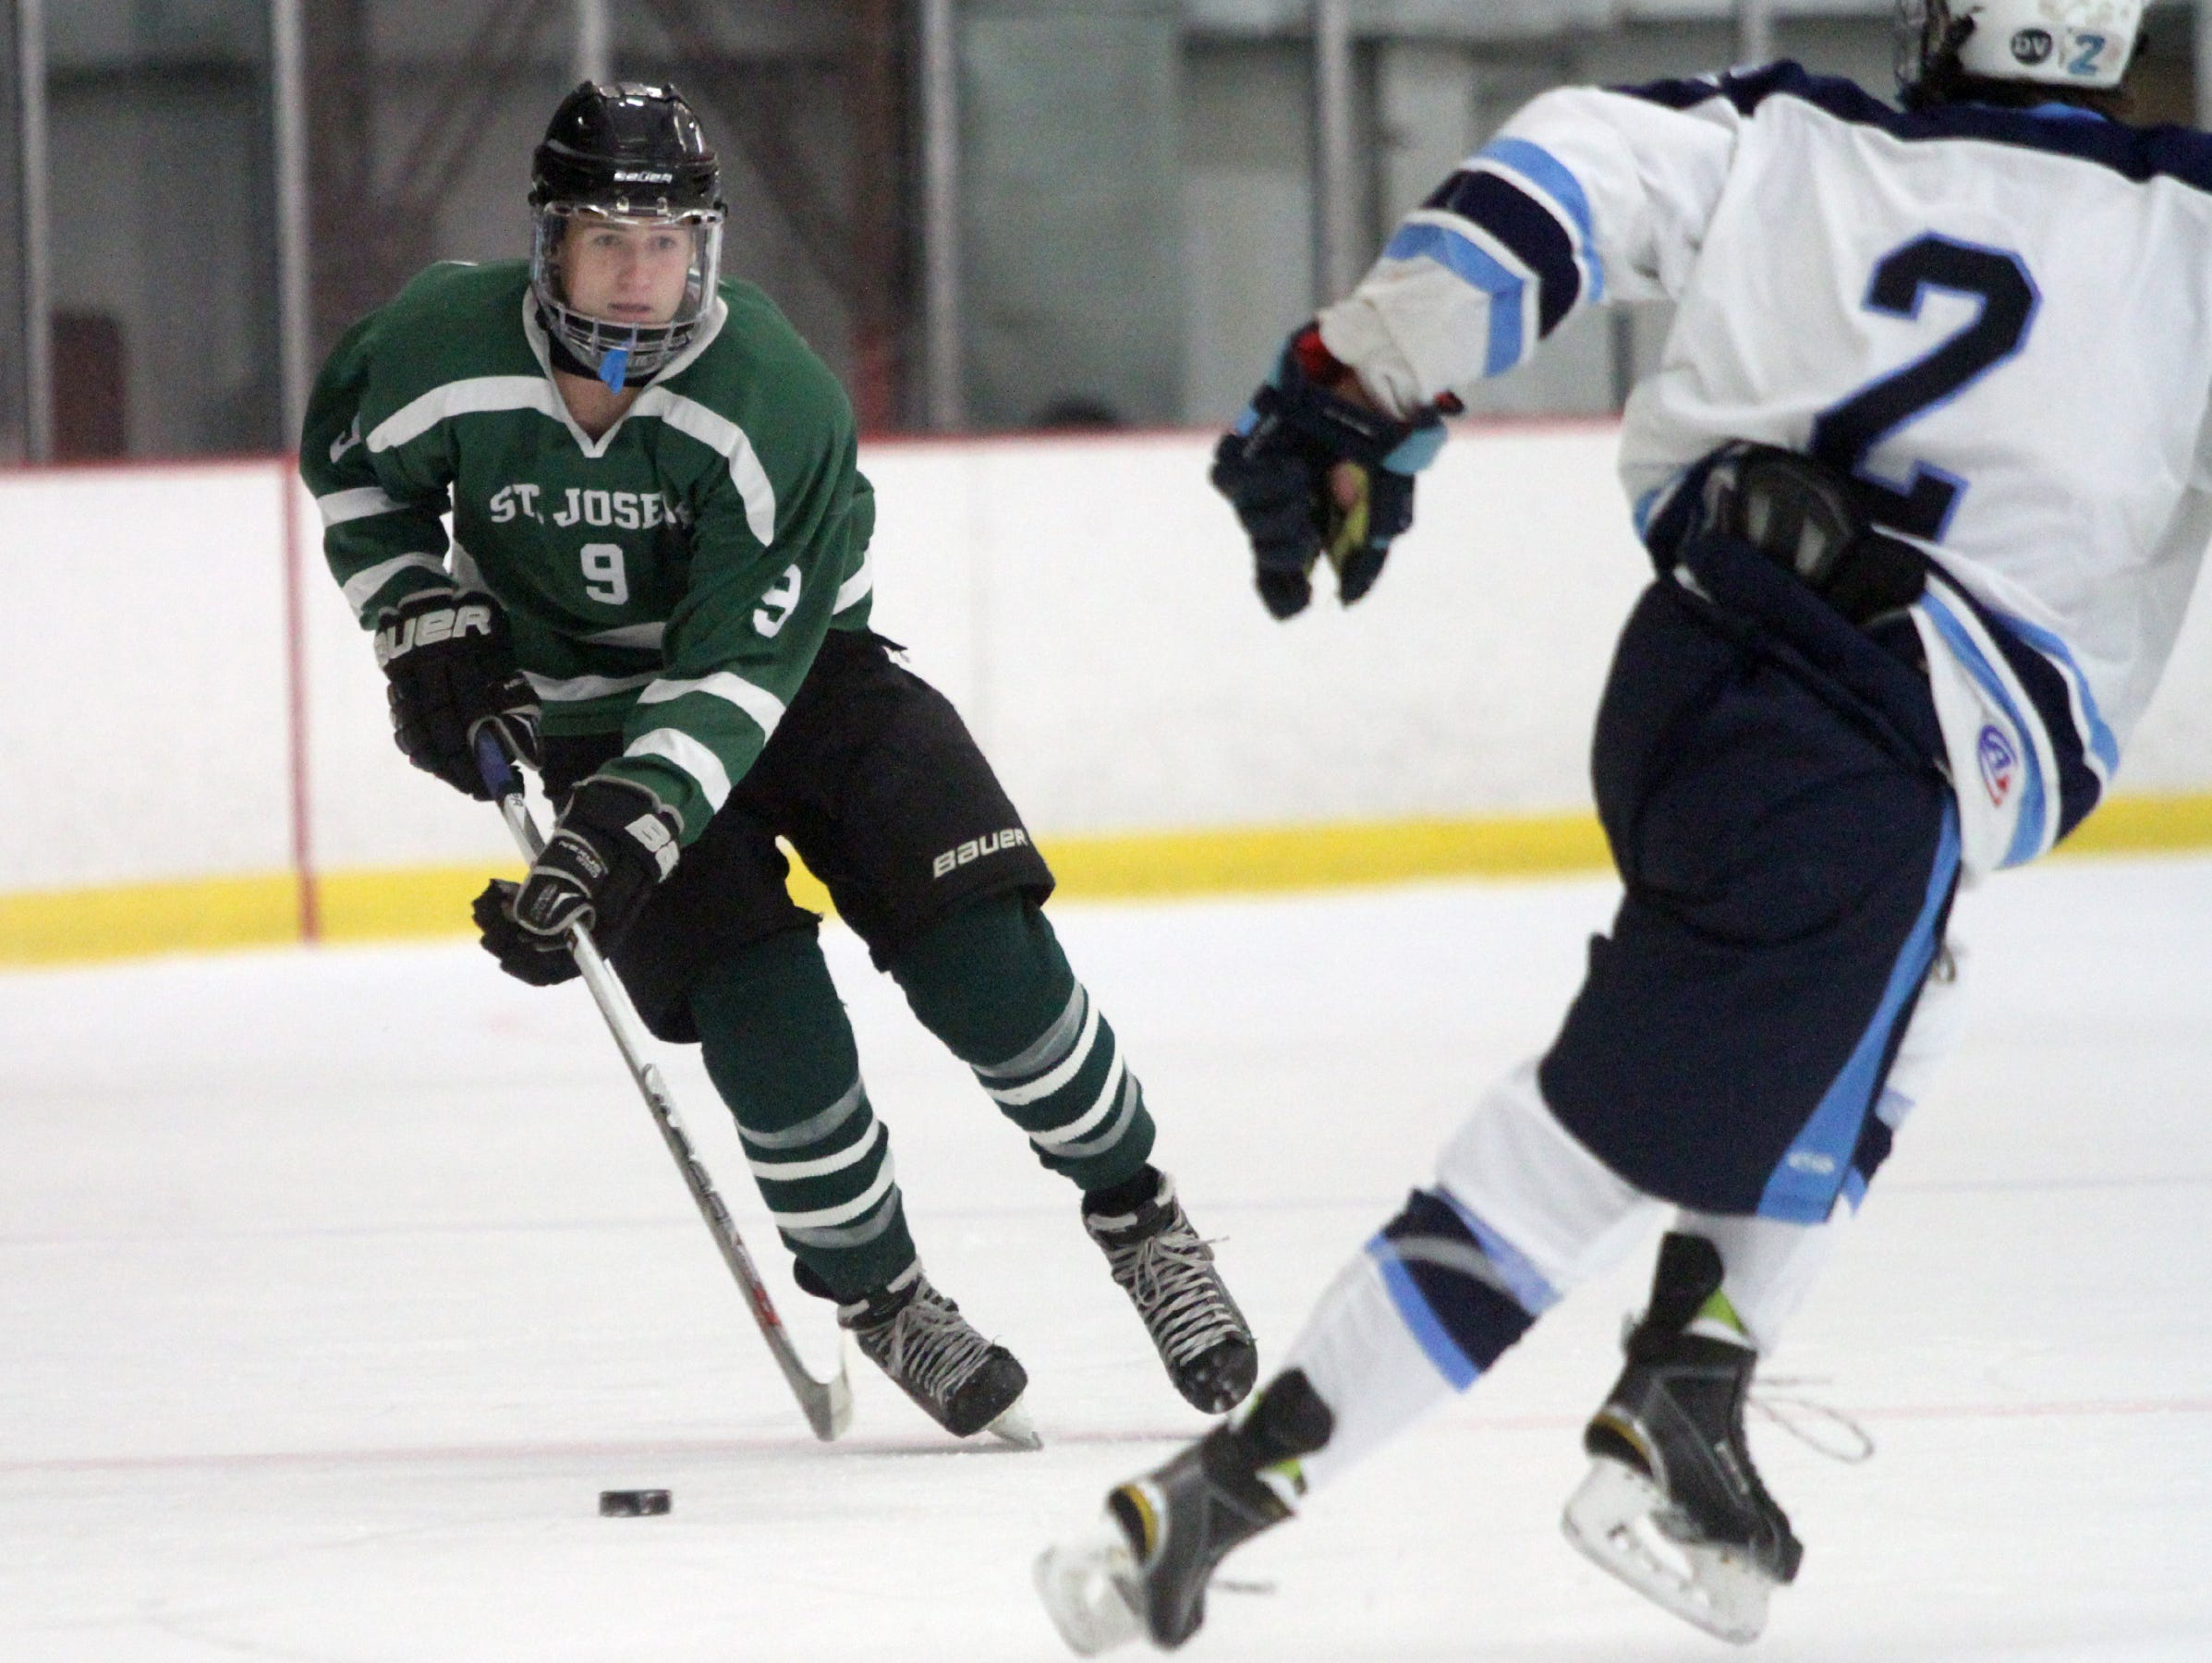 St. Joseph's Brian Coelho skates against CBA, Monday, November 23, 2015, during a preseason scrimmage at Jersey Shore Arena in Wall.